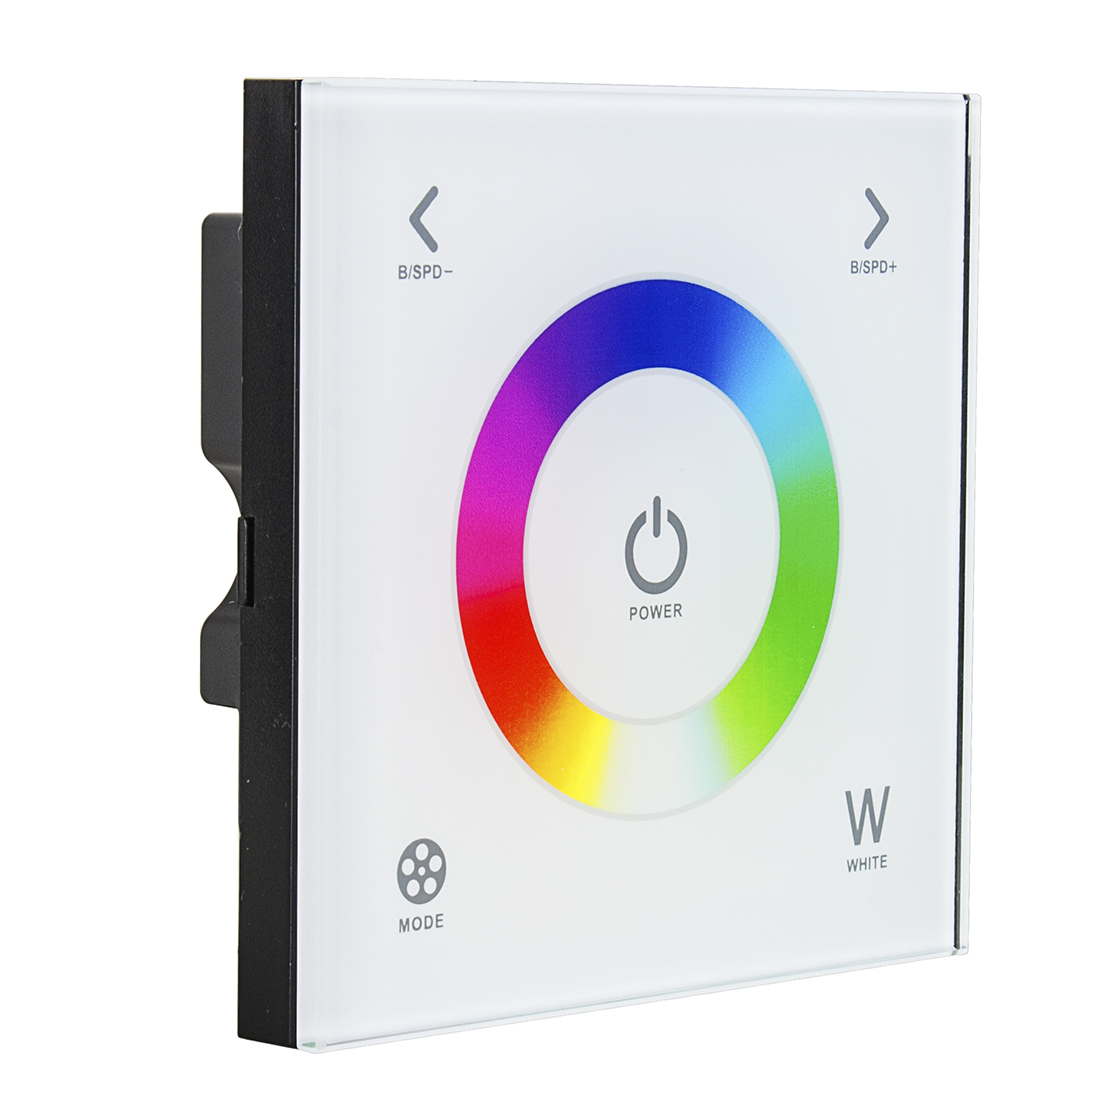 Wall Mount DC12-24V Touch Panel Full Color Dimmer Controller for RGBW LED Strip Lighting 16A 192W 384W 5 Year Warranty